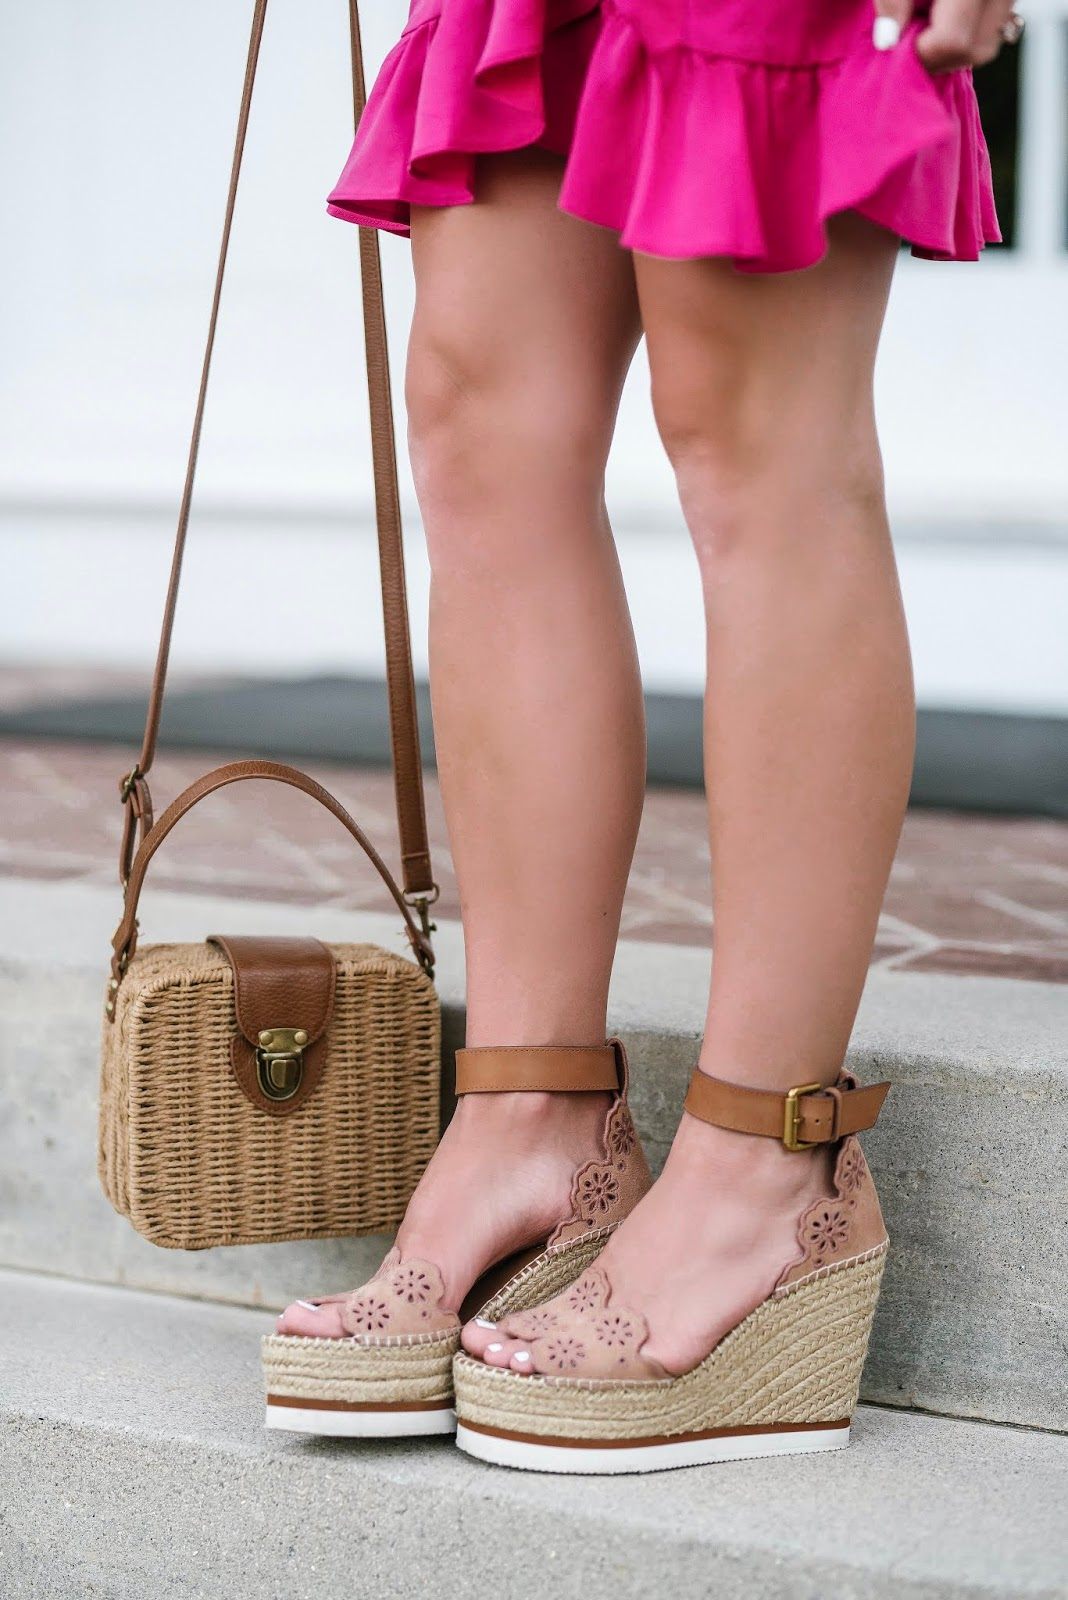 See by Chloe Wedges + Wicker Basket Bag - Something Delightful Blog